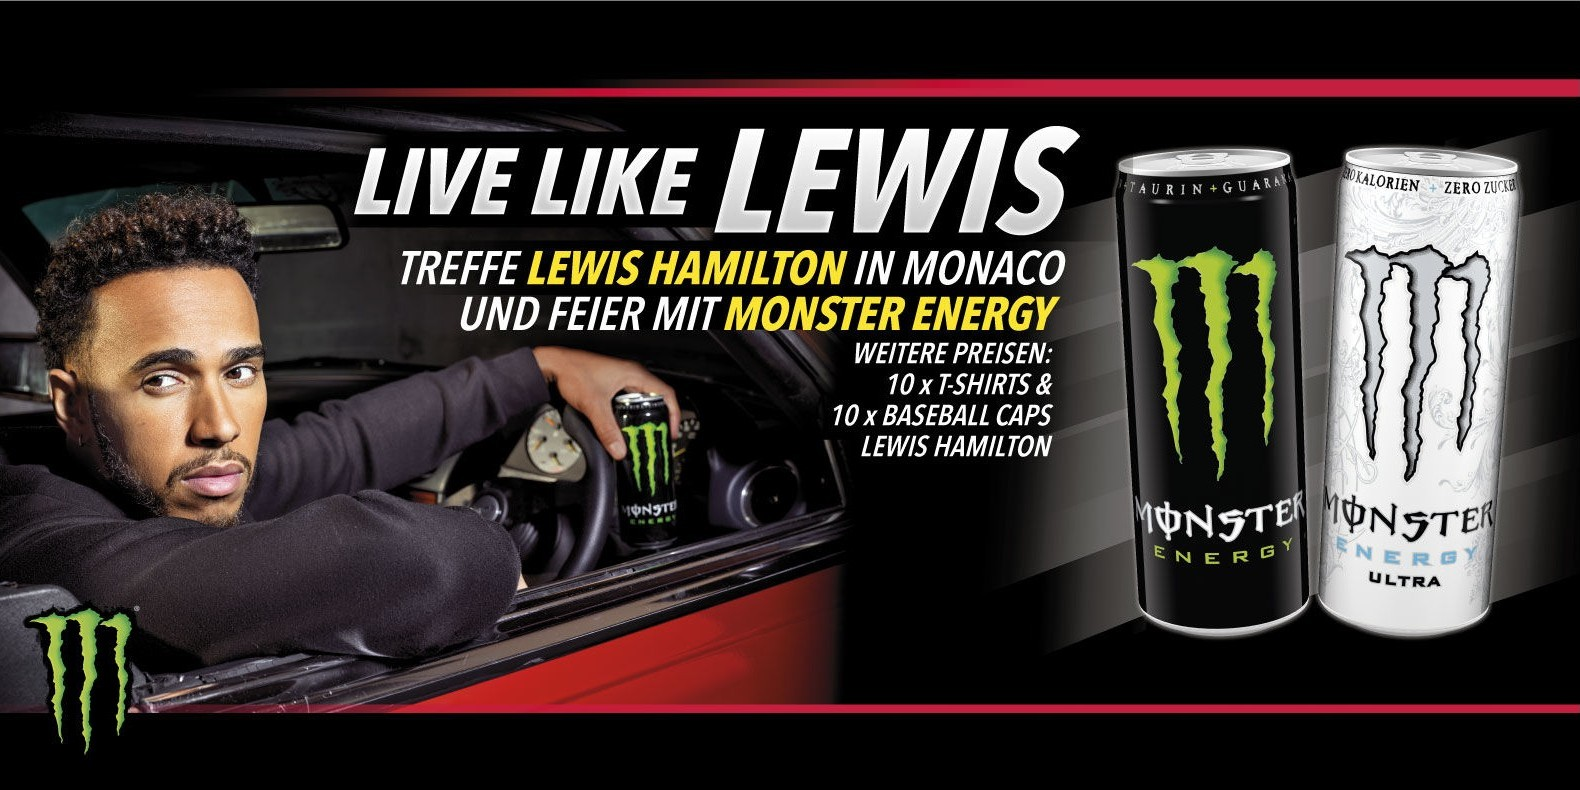 Swiss Promotion: Win a ride with Lewis Hamilton in Monaco